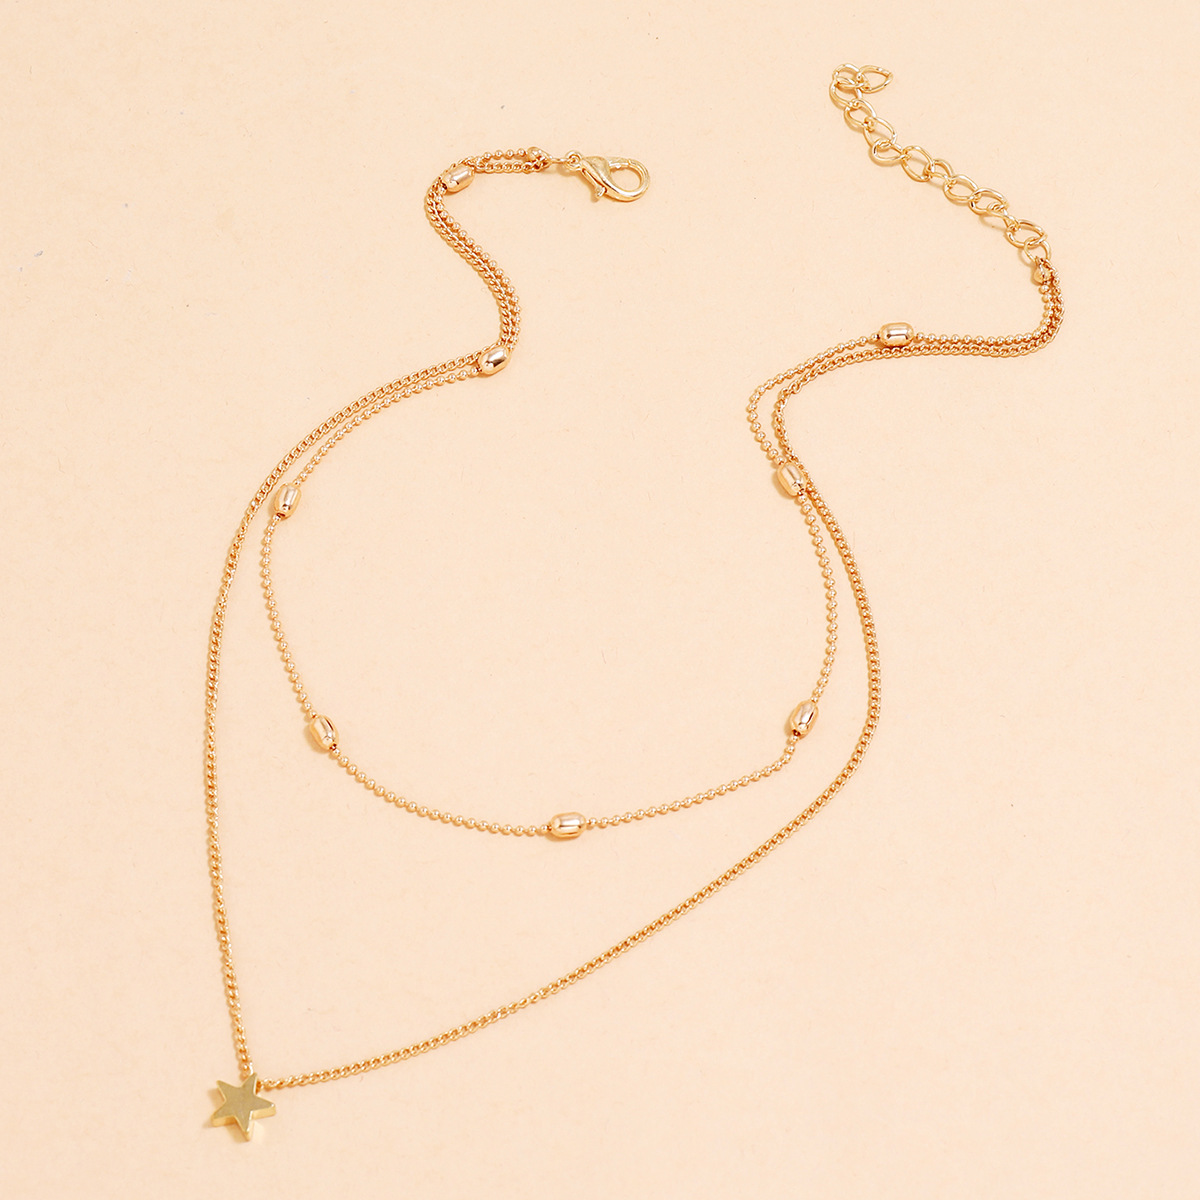 Simple Double-Layer Clavicle Necklace Star-Shaped Pendant Necklace  NHPV263720